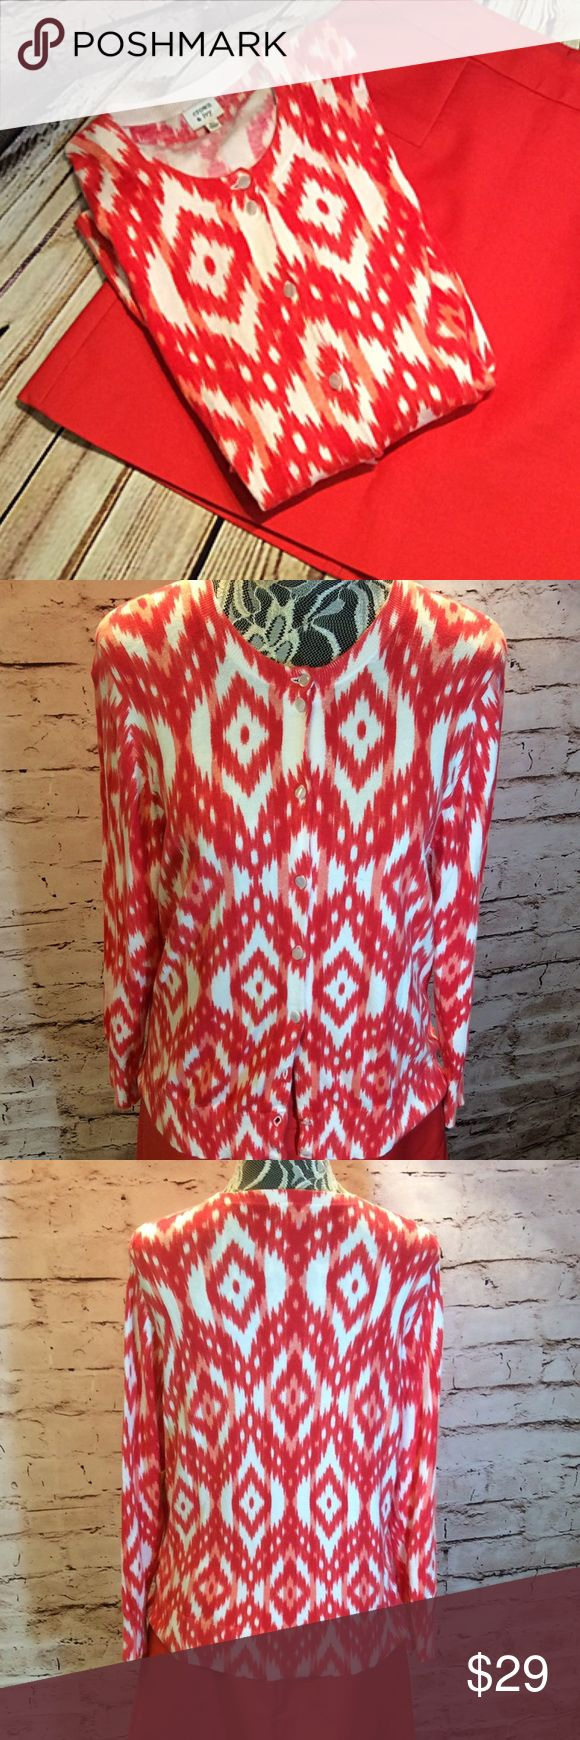 "SZ XL CROWN & IVY AZTEC PRINT LIGHTWEIGHT CARDIGAN Beautiful coral Aztec print cardigan in gently used condition with 1 button near the bottom missing. Lying flat Bust 20"" length 24"" sleeve length 21"" Crown & Ivy Sweaters Cardigans"